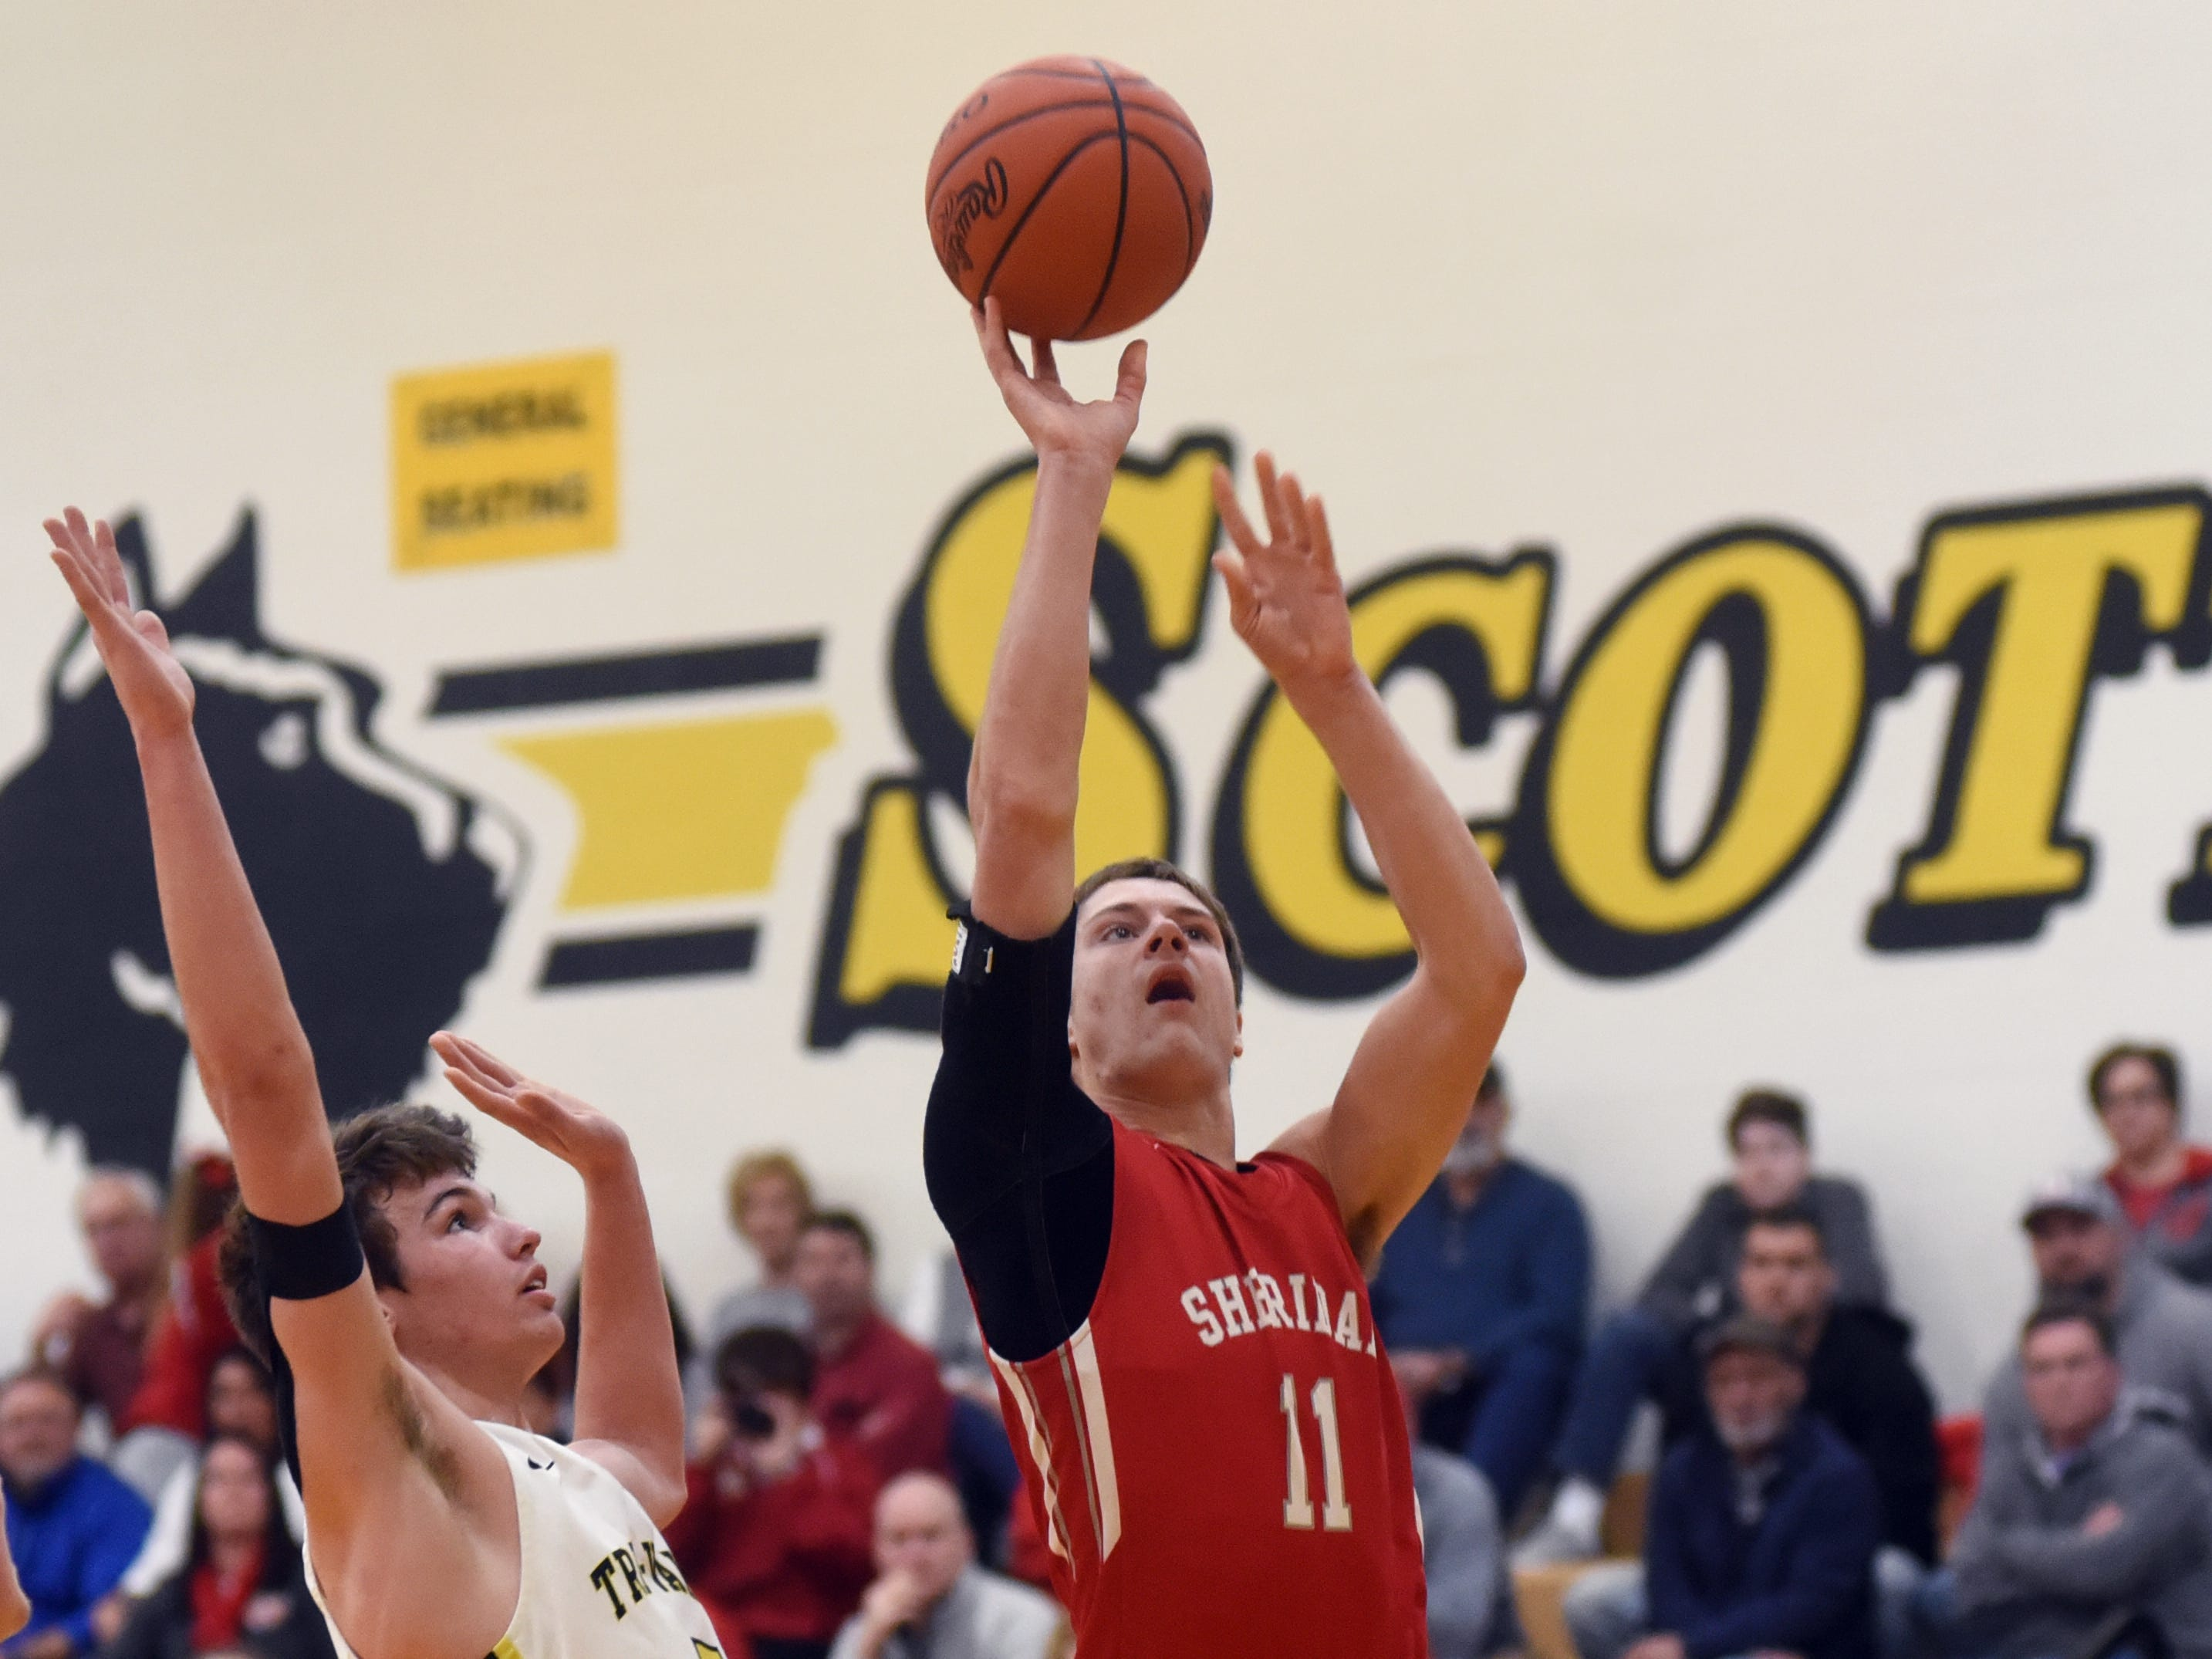 Sheridan's Luken Hill takes a shot in the lane over Tri-Valley's Keaton Williams on Friday night in Dresden.